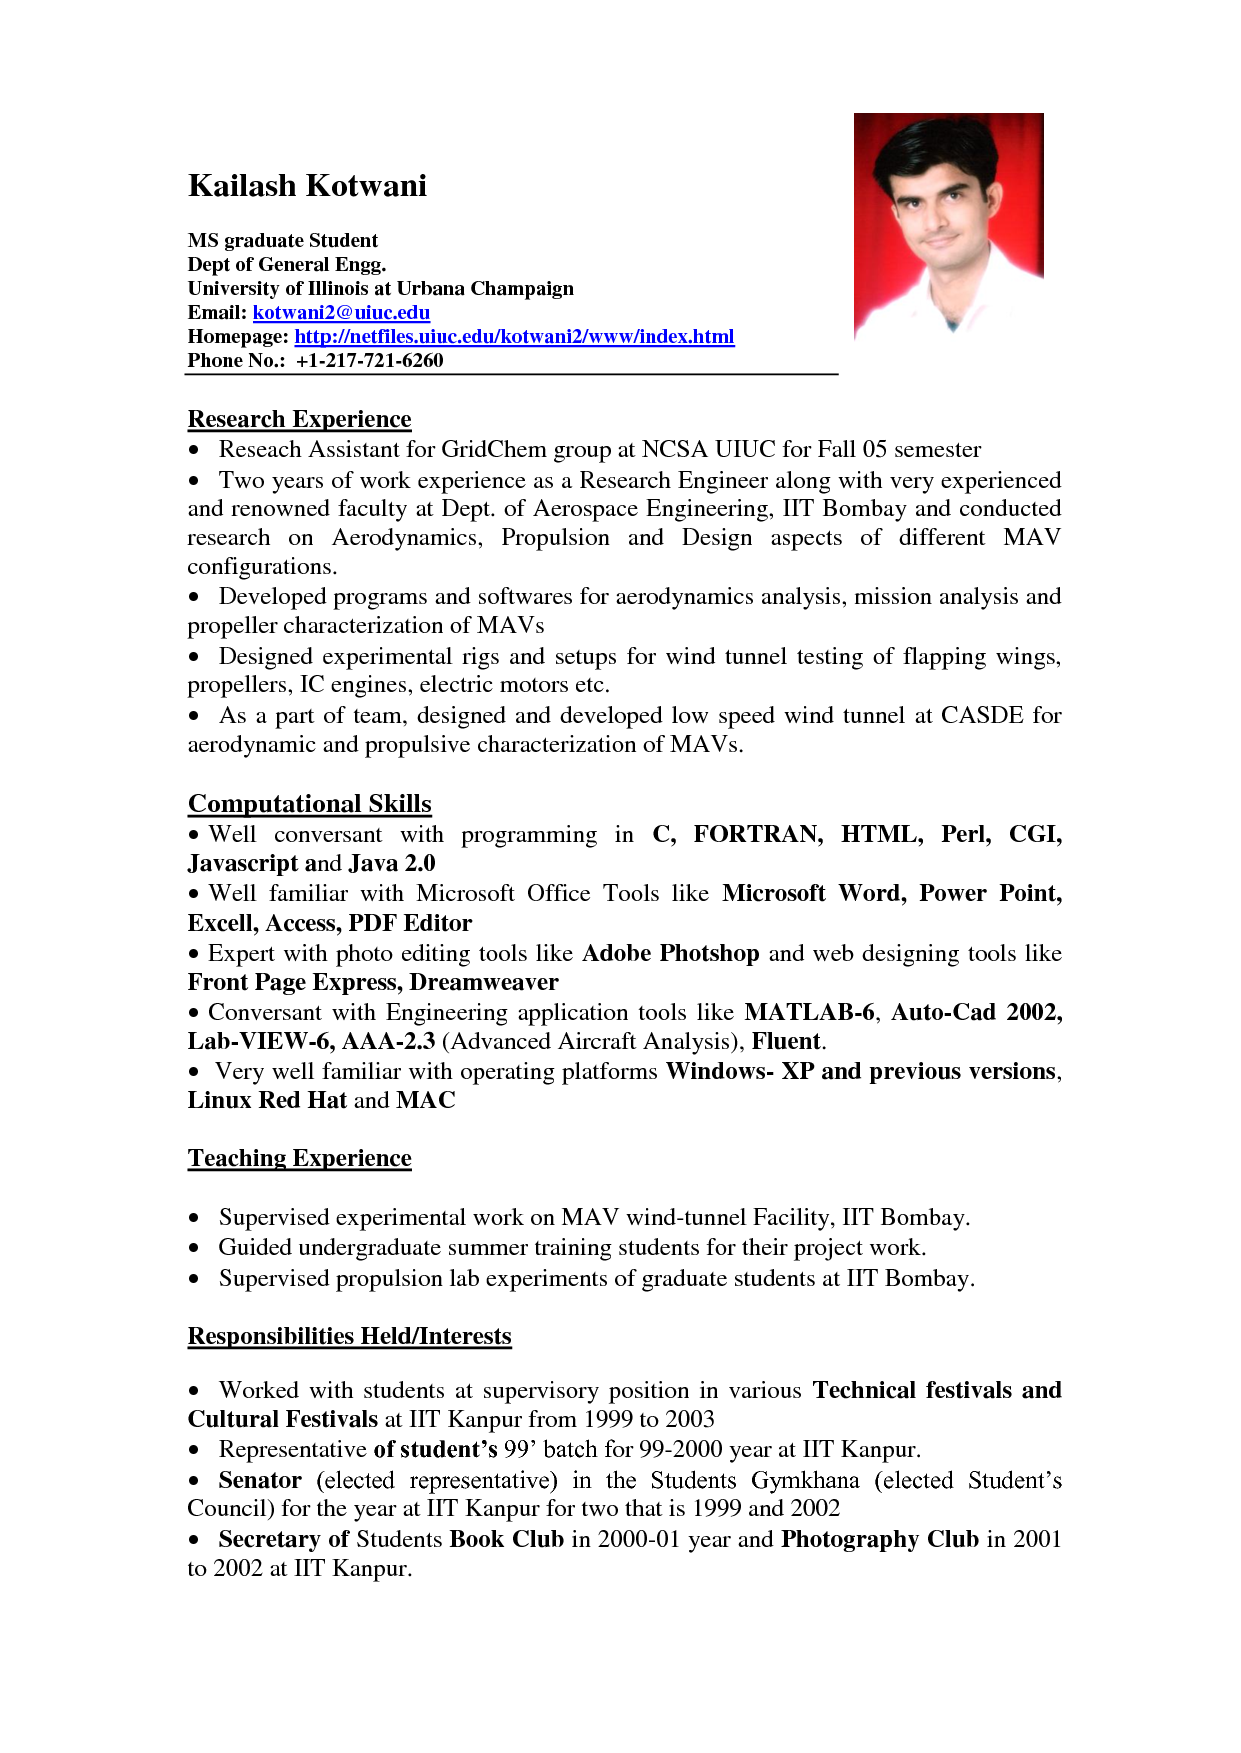 Student Resume Sample click below to this resume template college student resume samples sample resume for college student 11 Student Resume Samples No Experience